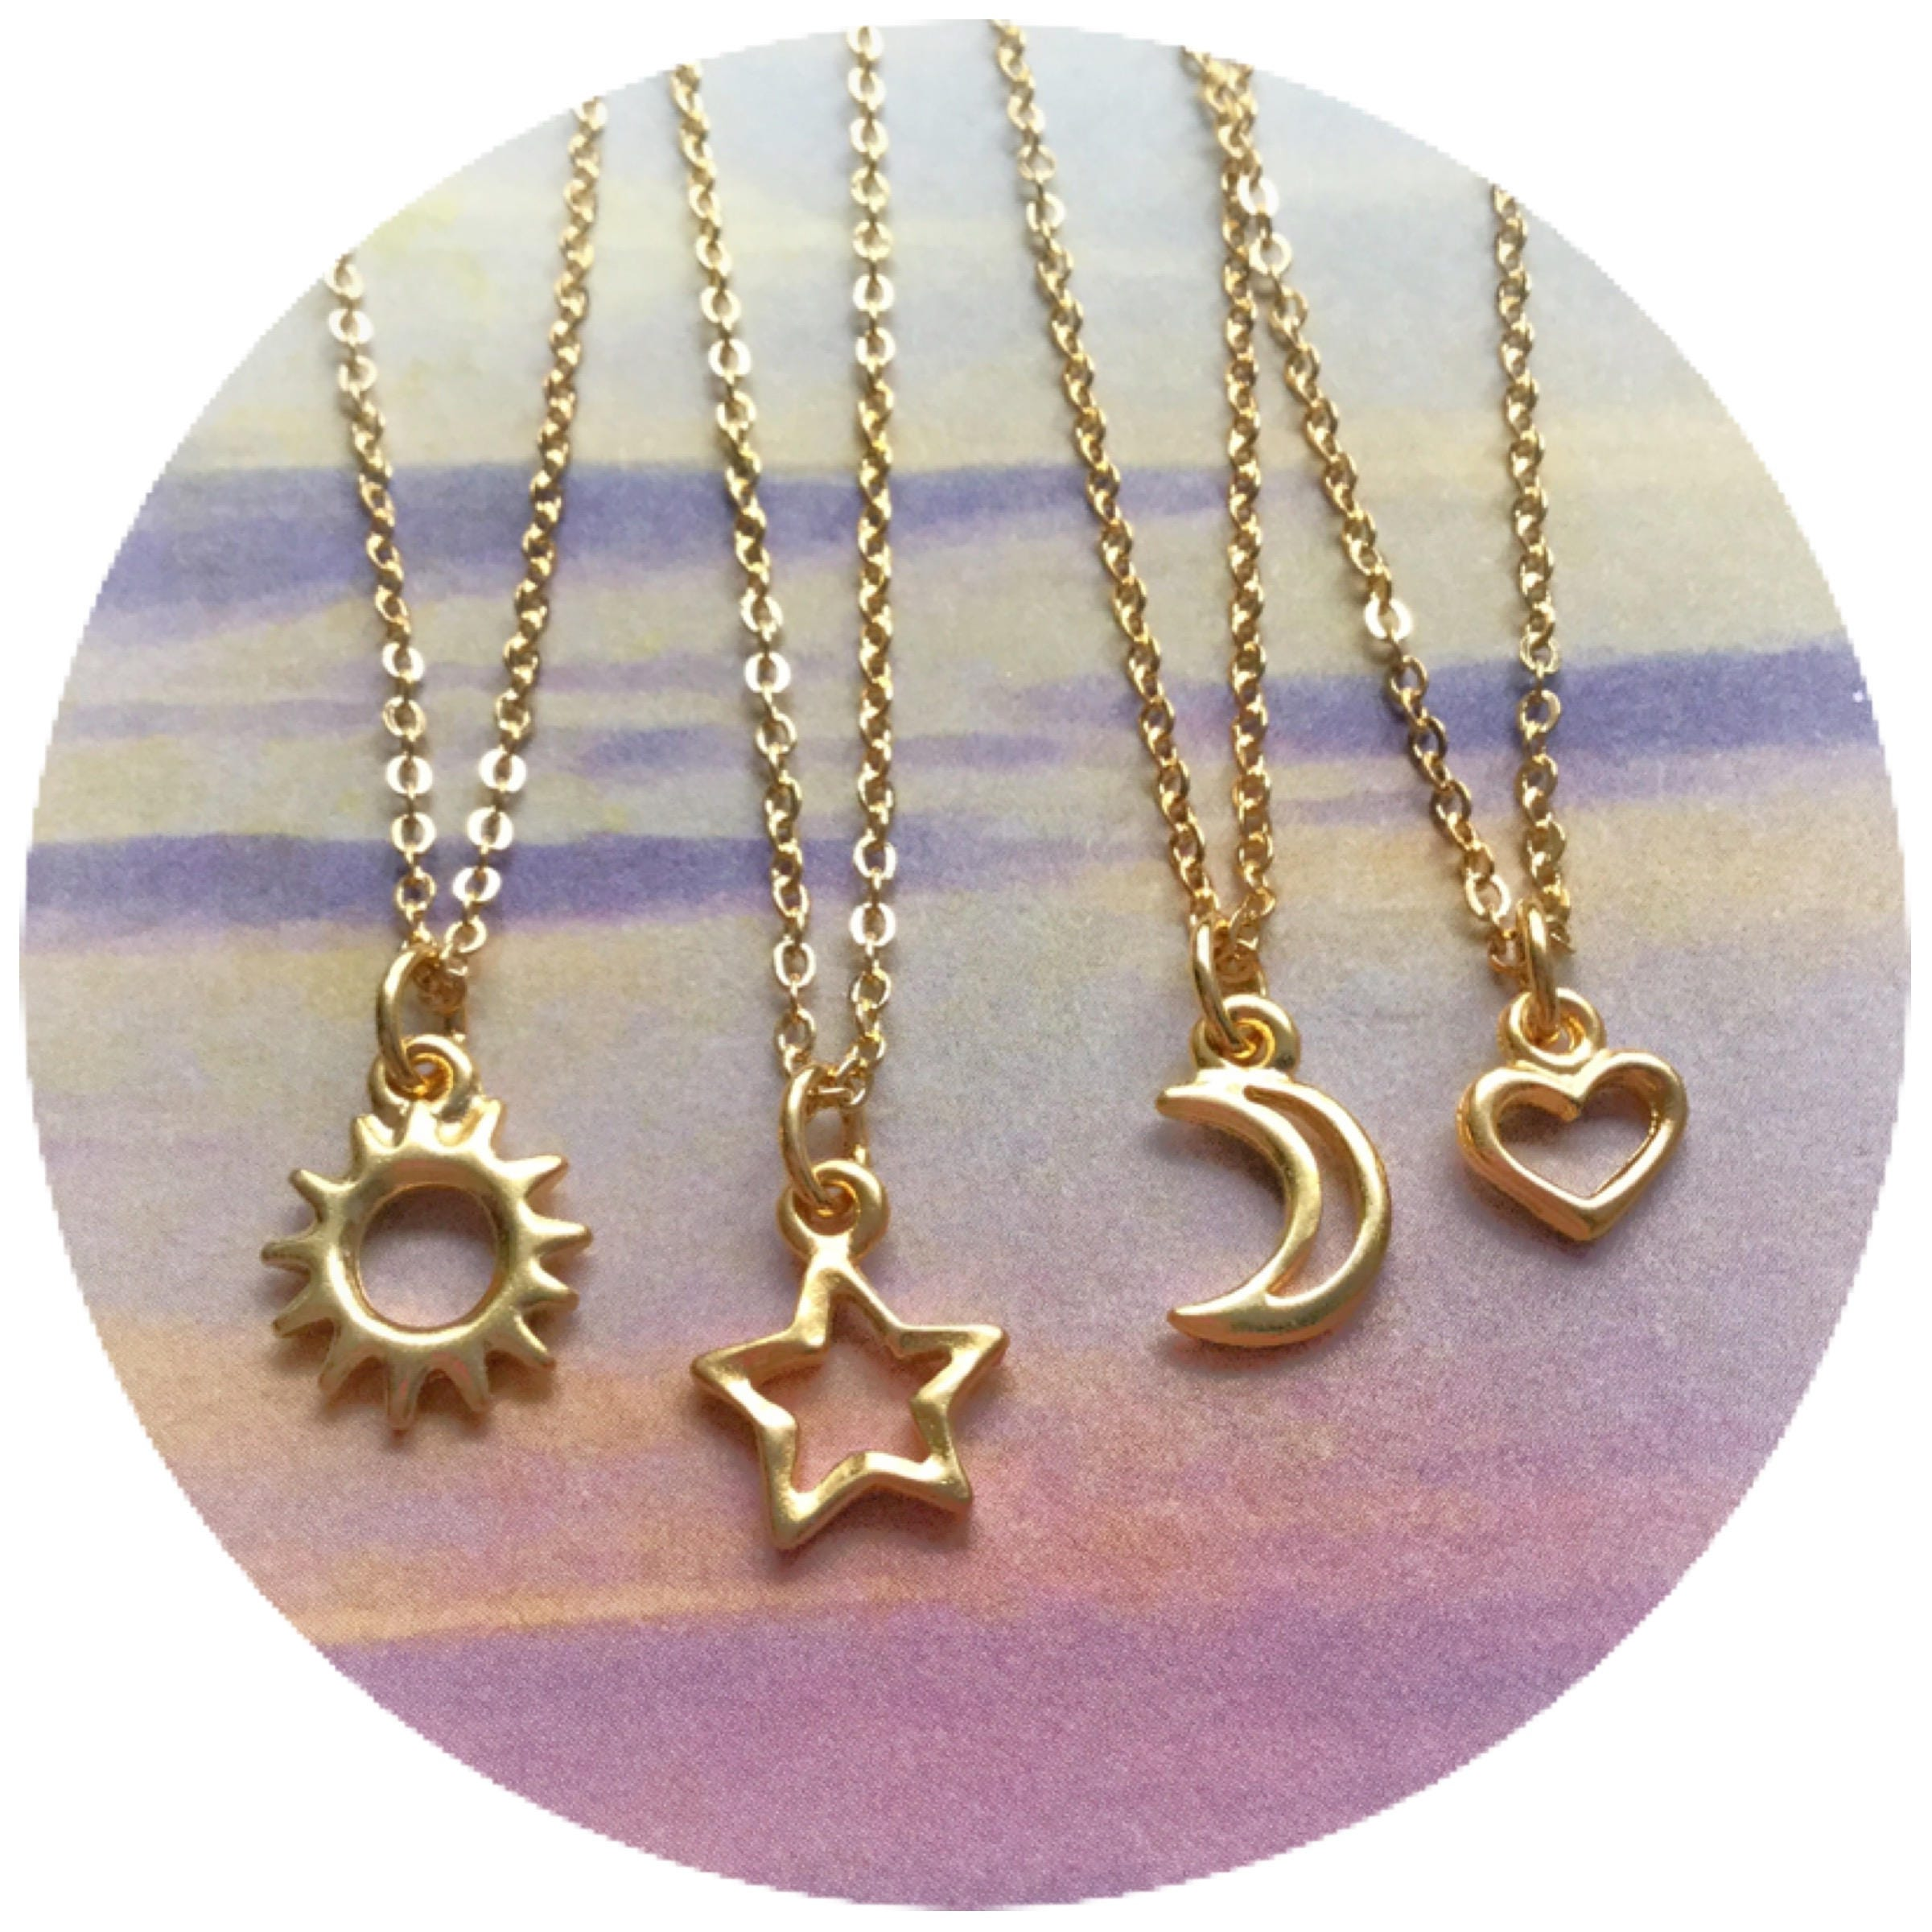 jewelry moon best bff sisters pin star necklaces matching sun friends necklace gift